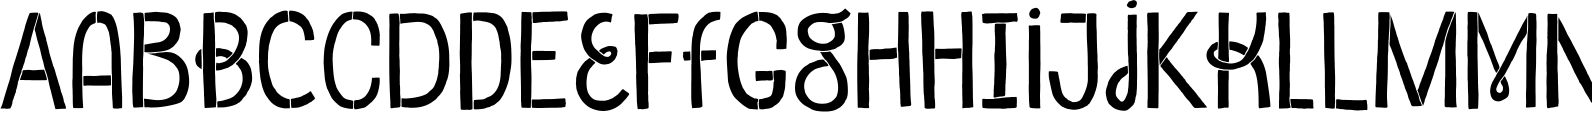 Undersong Stencil Font